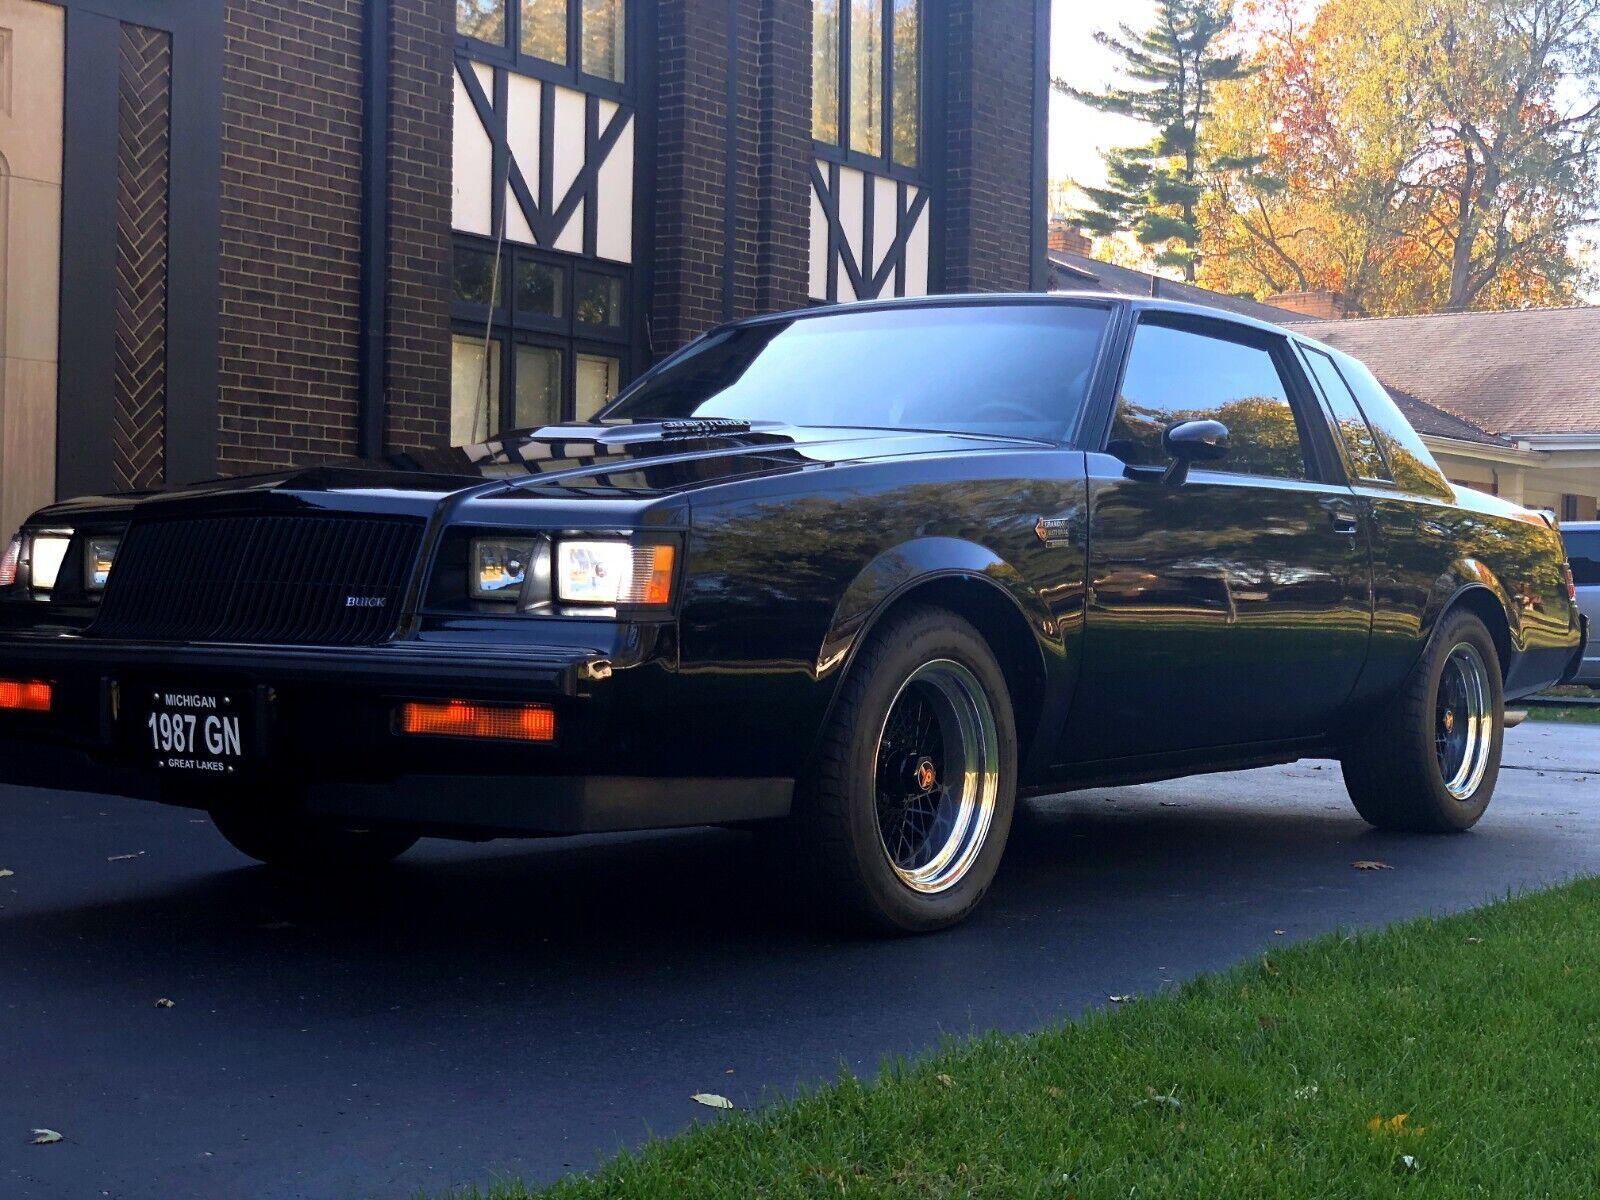 1987 Buick Grand National  The Holy Grail, 1987 Buick Grand National You've Always Wanted